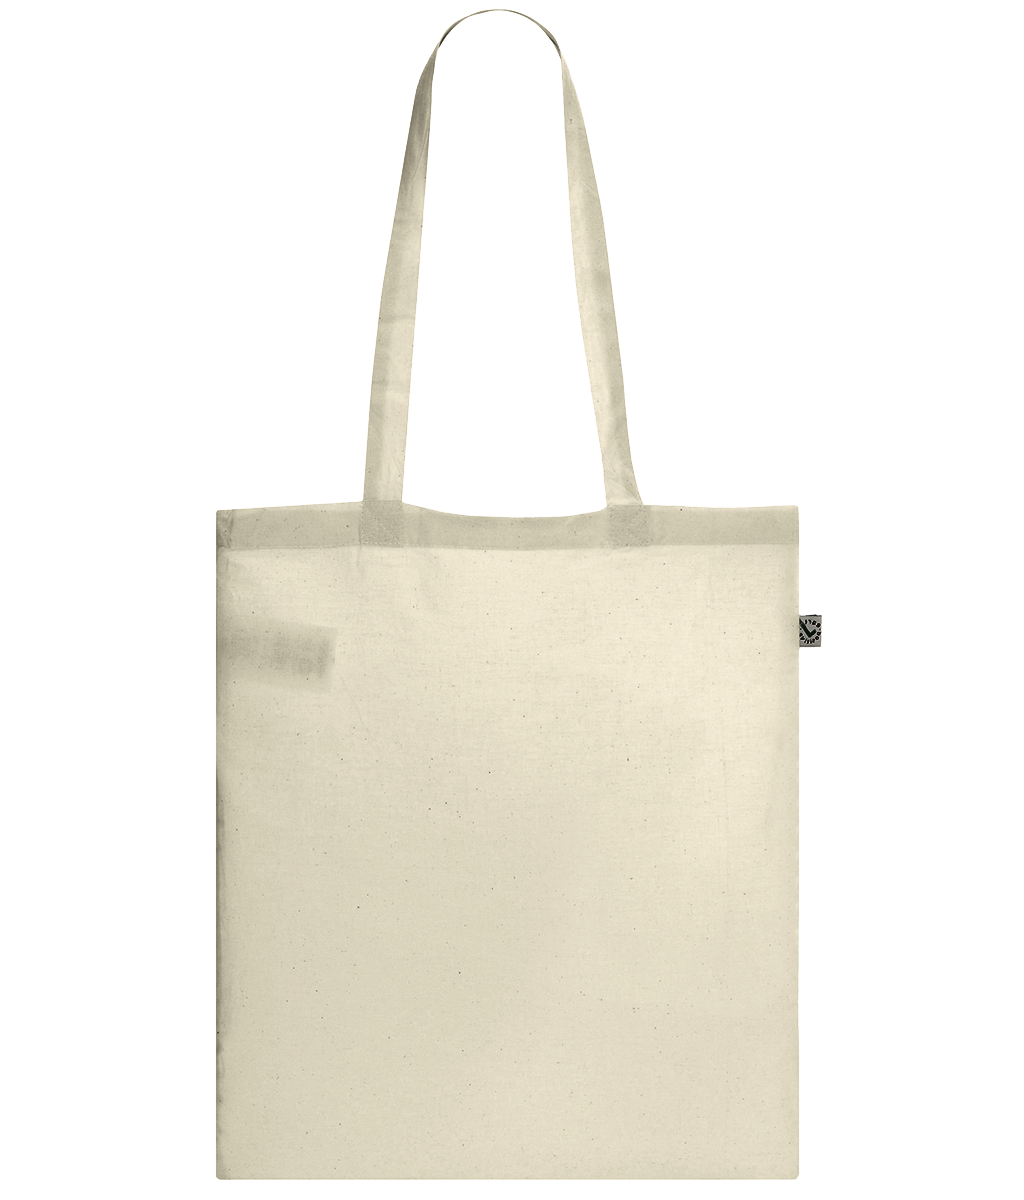 Avocando Organic Cotton Classic Shopper Tote - MOTIVATEE